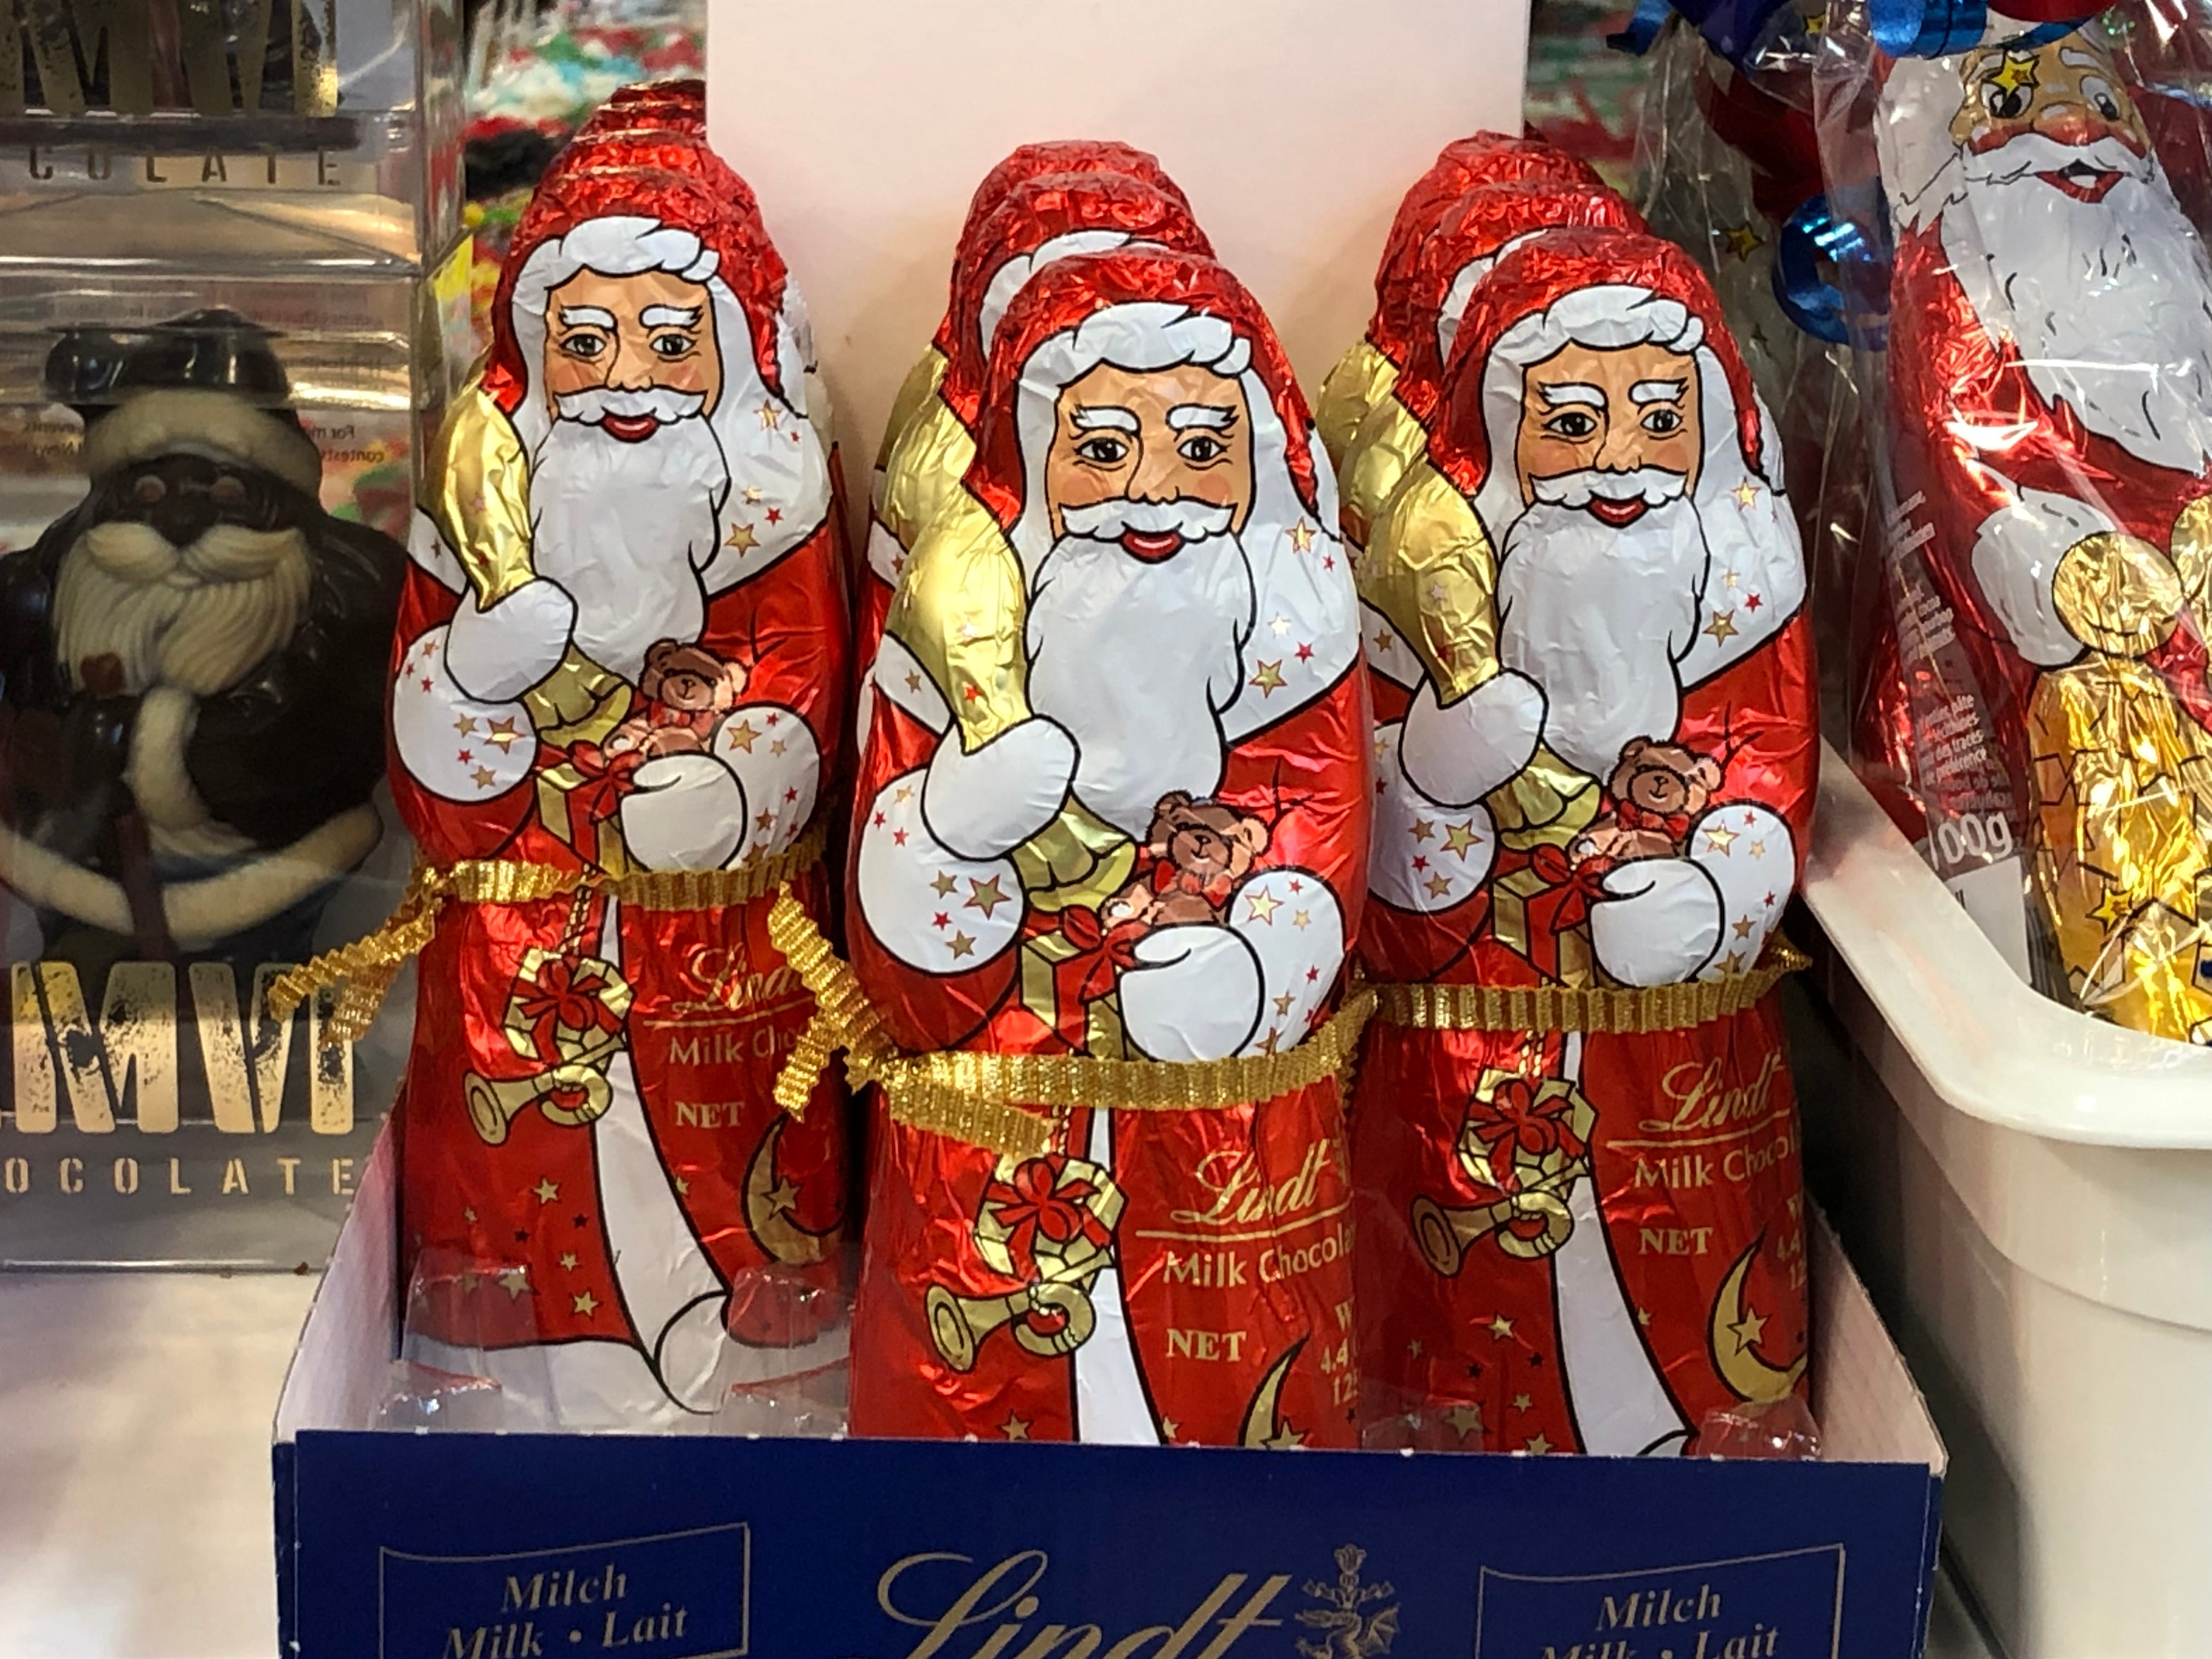 More individually wrapped milk chocolate, only this chocolate Santa Claus weighs in nearly three times large than your standard Hershey bar.